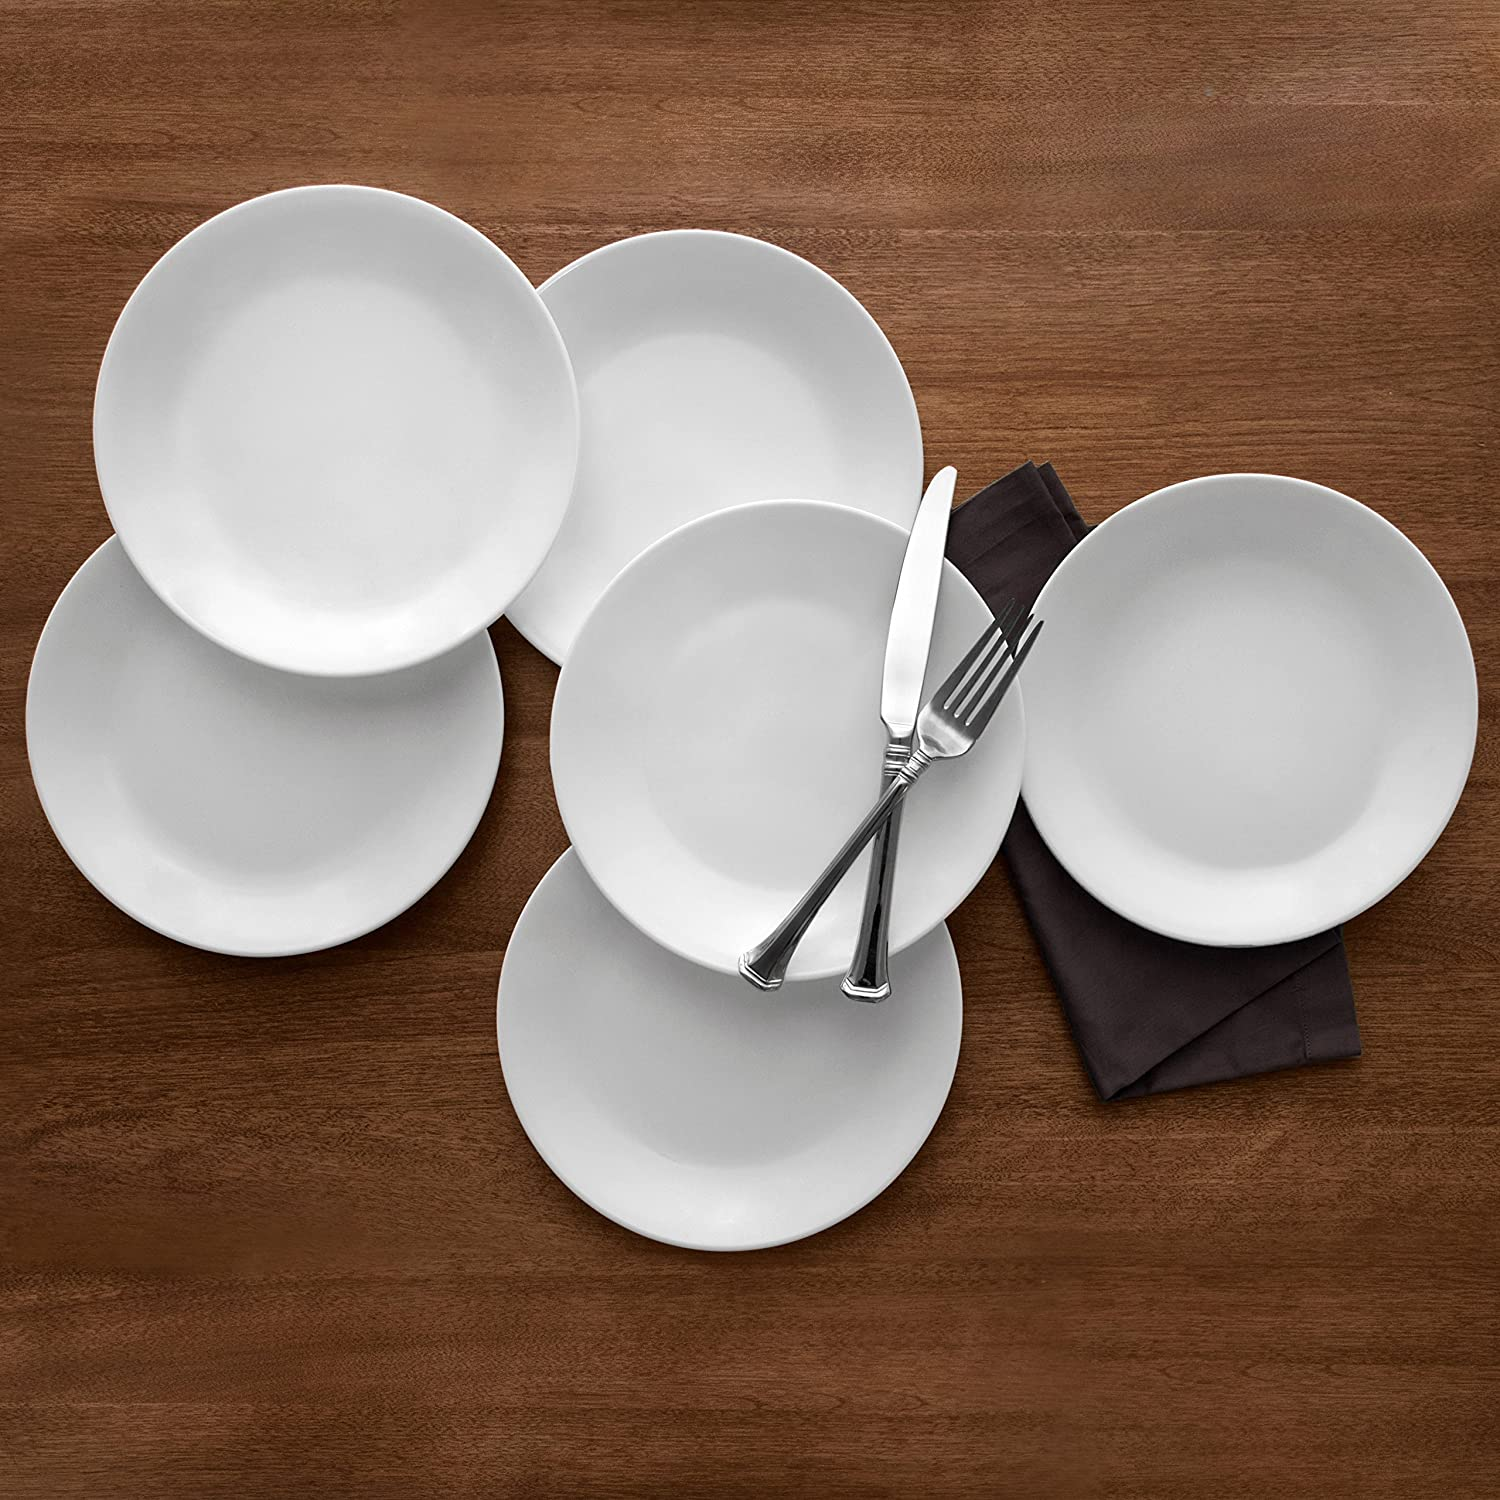 Corelle Winter Frost White Lunch Plates Set 8 1 2 Inch 6 Piece White Luncheon Plates Dining Entertaining